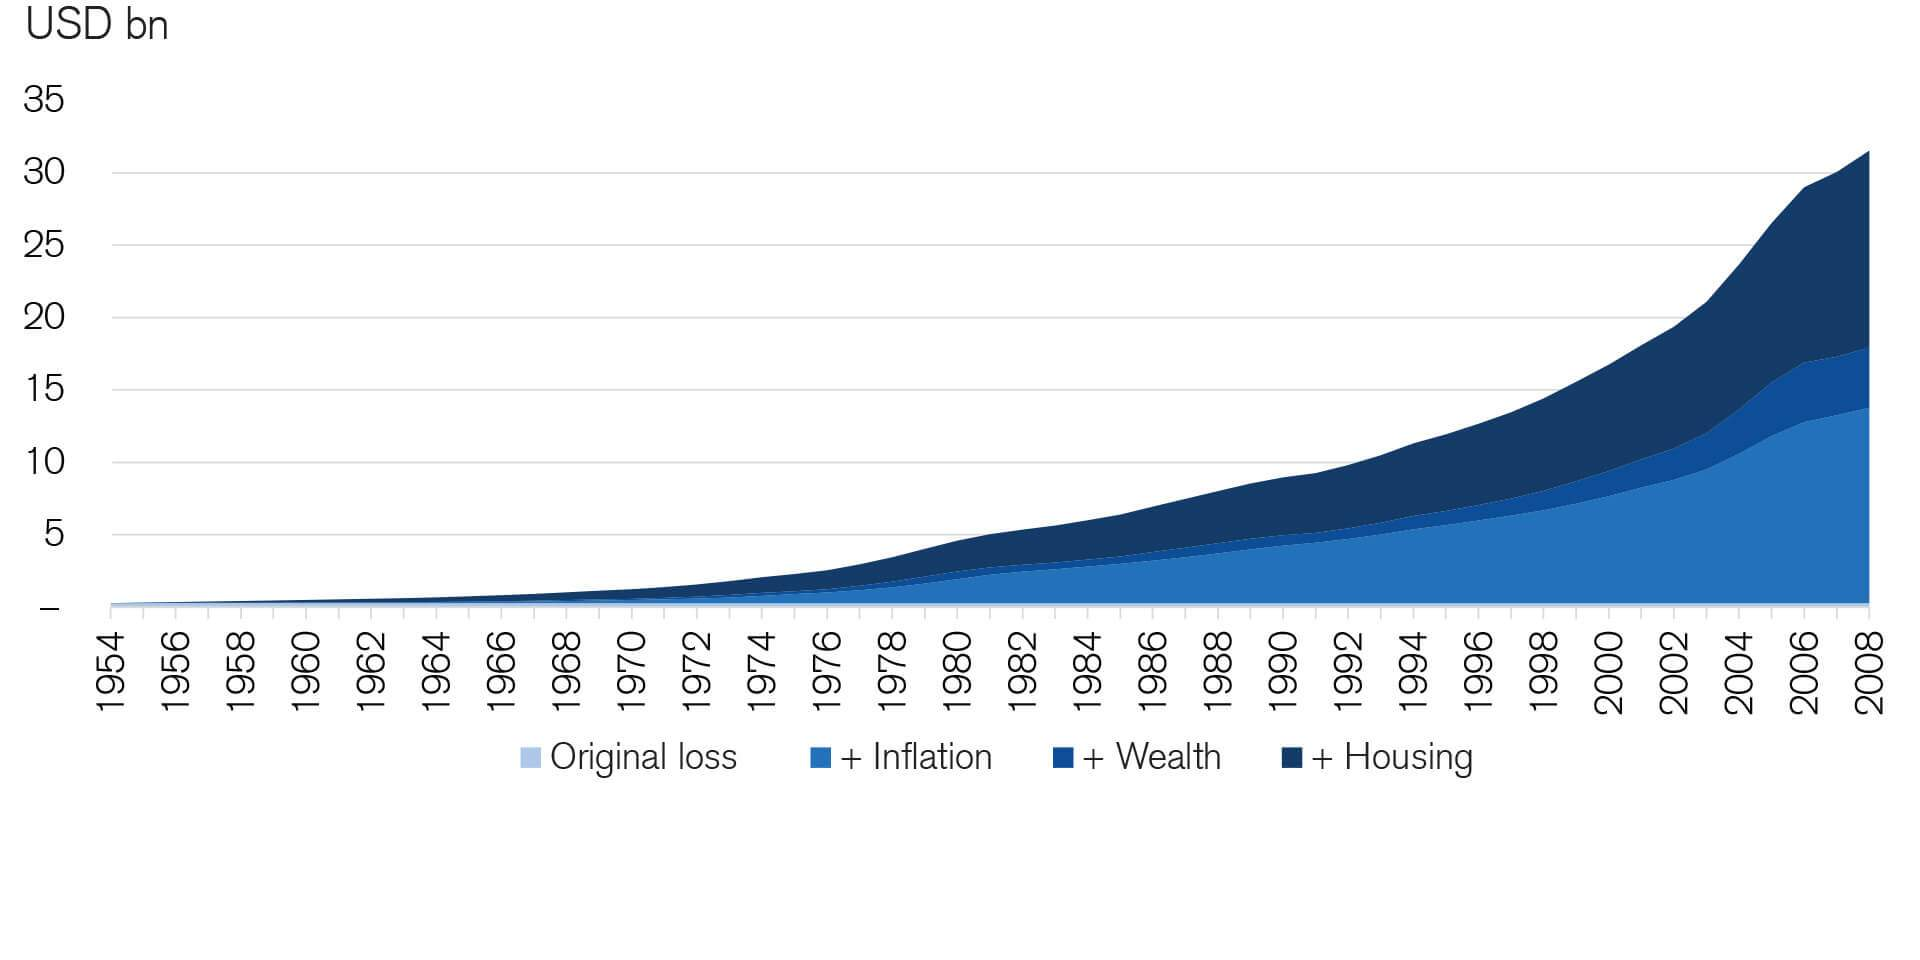 This chart shows the adjusted economic losses from Hurricane Hazel. At the time of occurrence in 1954, the storm caused economic losses of USD 281 mn. In 2008, 54 years later, the same event would cause more than USD 30 bn in economic losses. The main drivers of the increasing losses are inflation, followed by the increasing housing density and rise in real wealth.